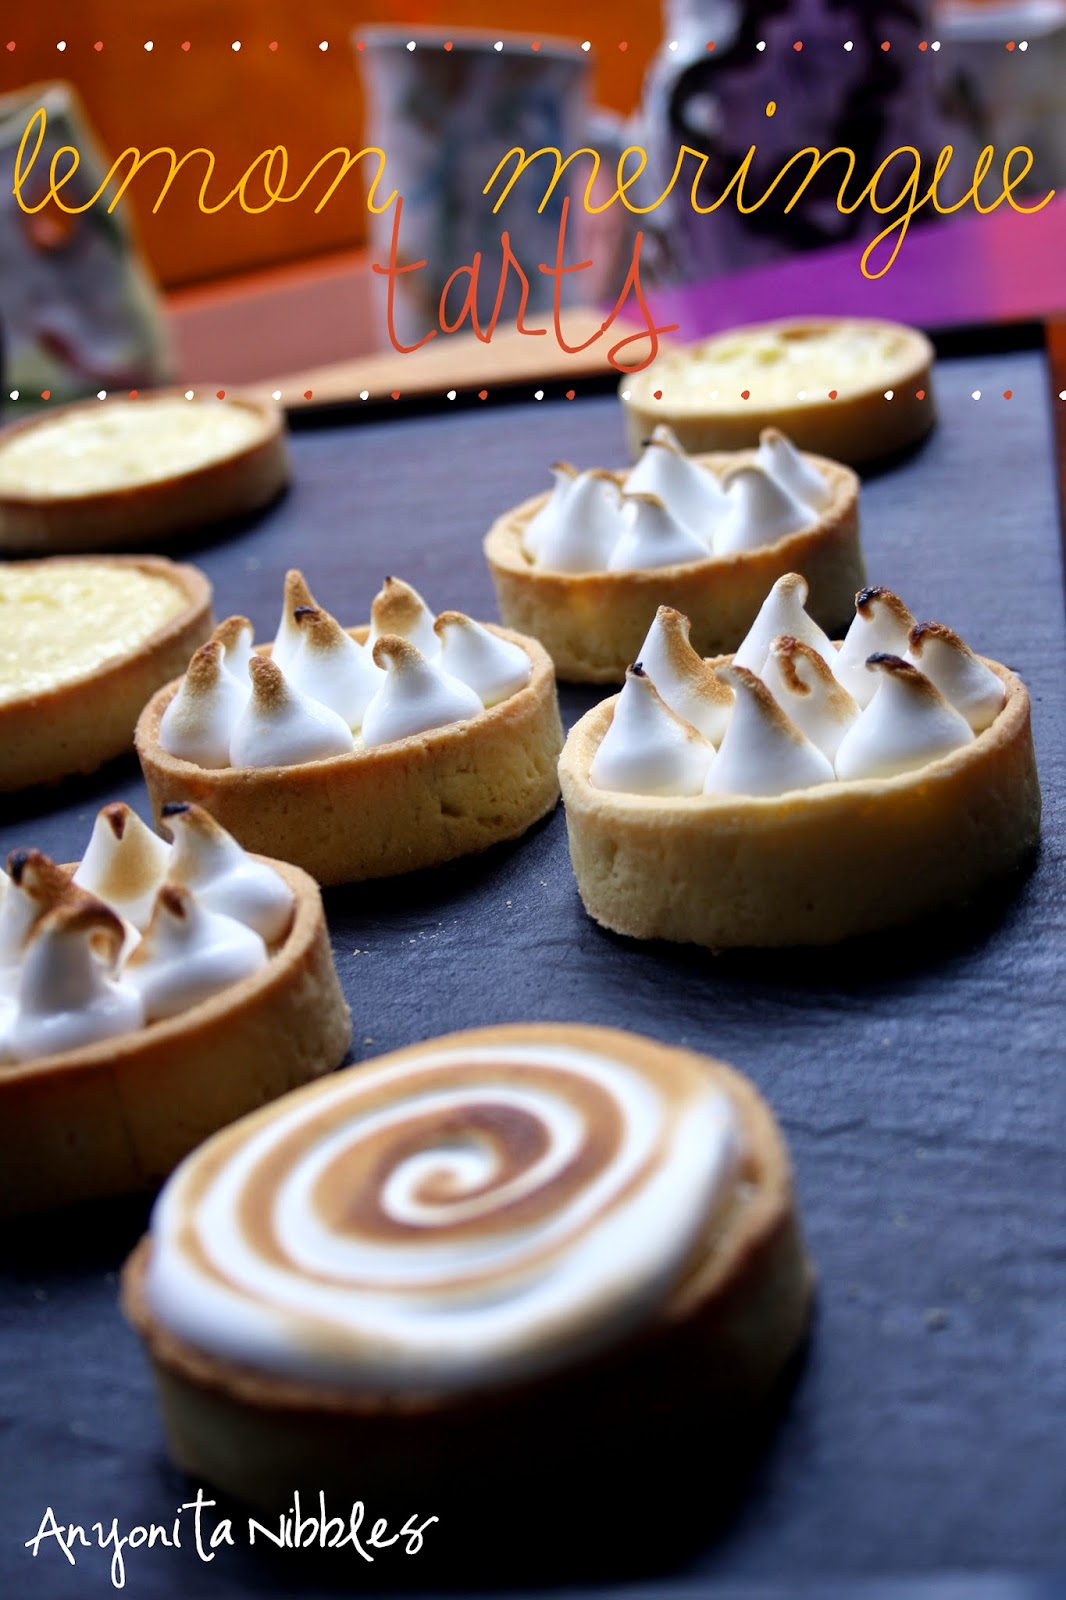 Lemon Meringue Tarts ready for eating from Anyonita Nibbles